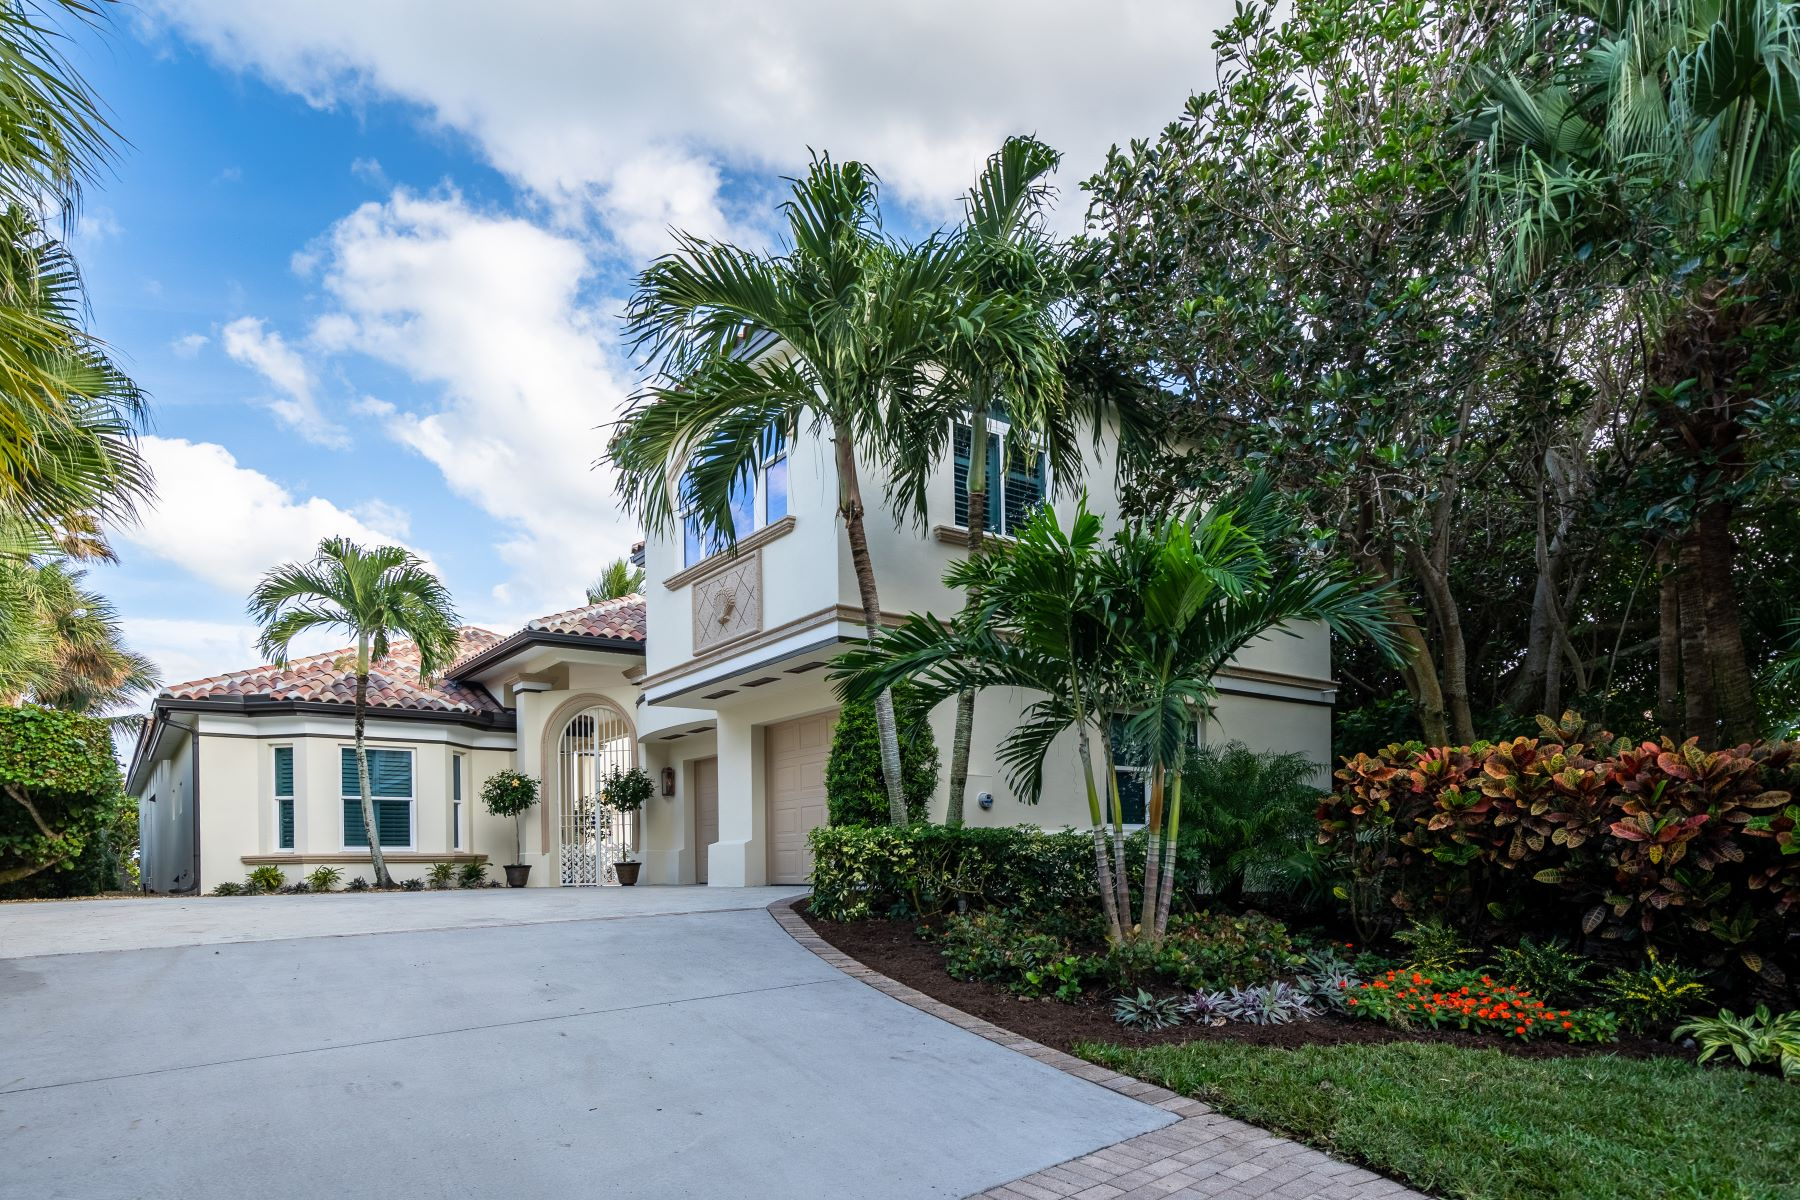 Property para Venda às Stunning Oceanfront Courtyard Home 151 Mariner Beach Lane Vero Beach, Florida 32963 Estados Unidos